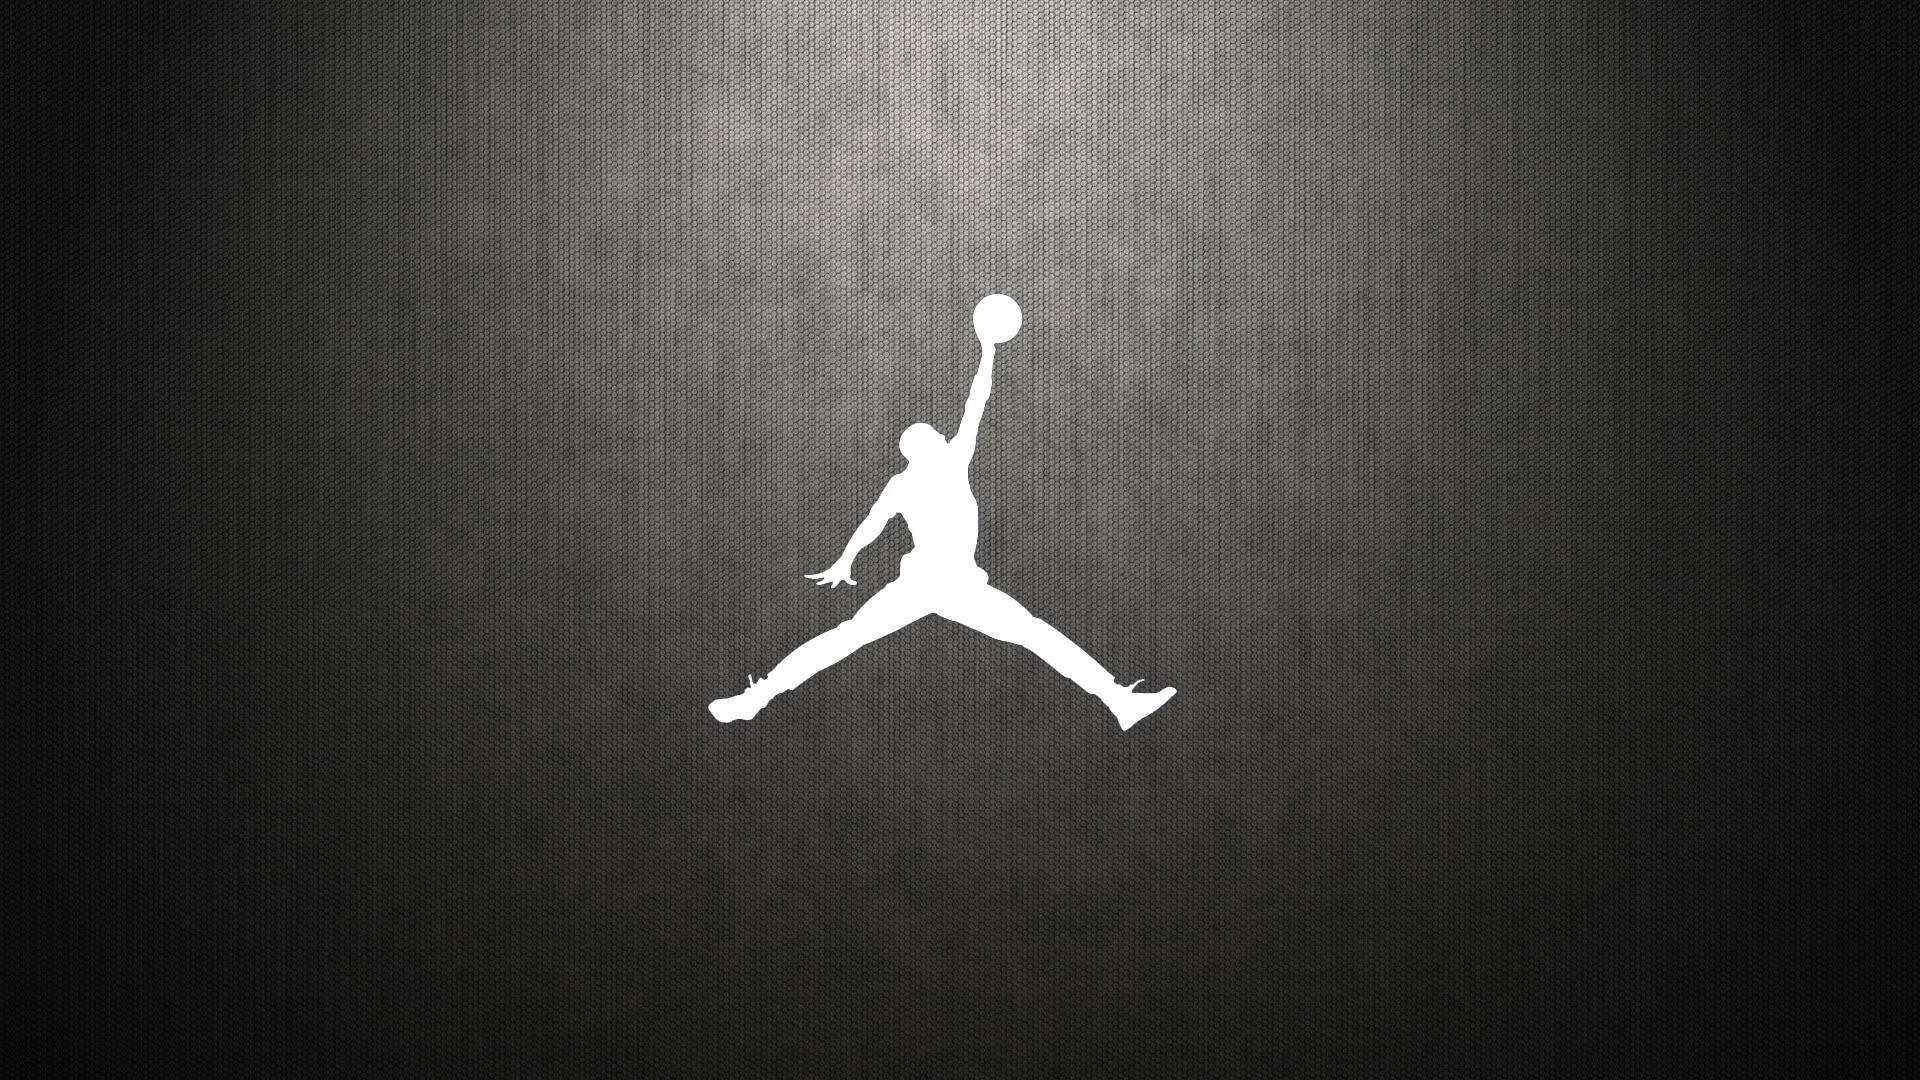 Nike cool wallpaper 1920x1080 1920x1080 nike logo wallpapers hd free download pixelstalk cool nike iphone wallpapers desktop pixelstalk nike wallpaper hd 1920x1080 voltagebd Gallery